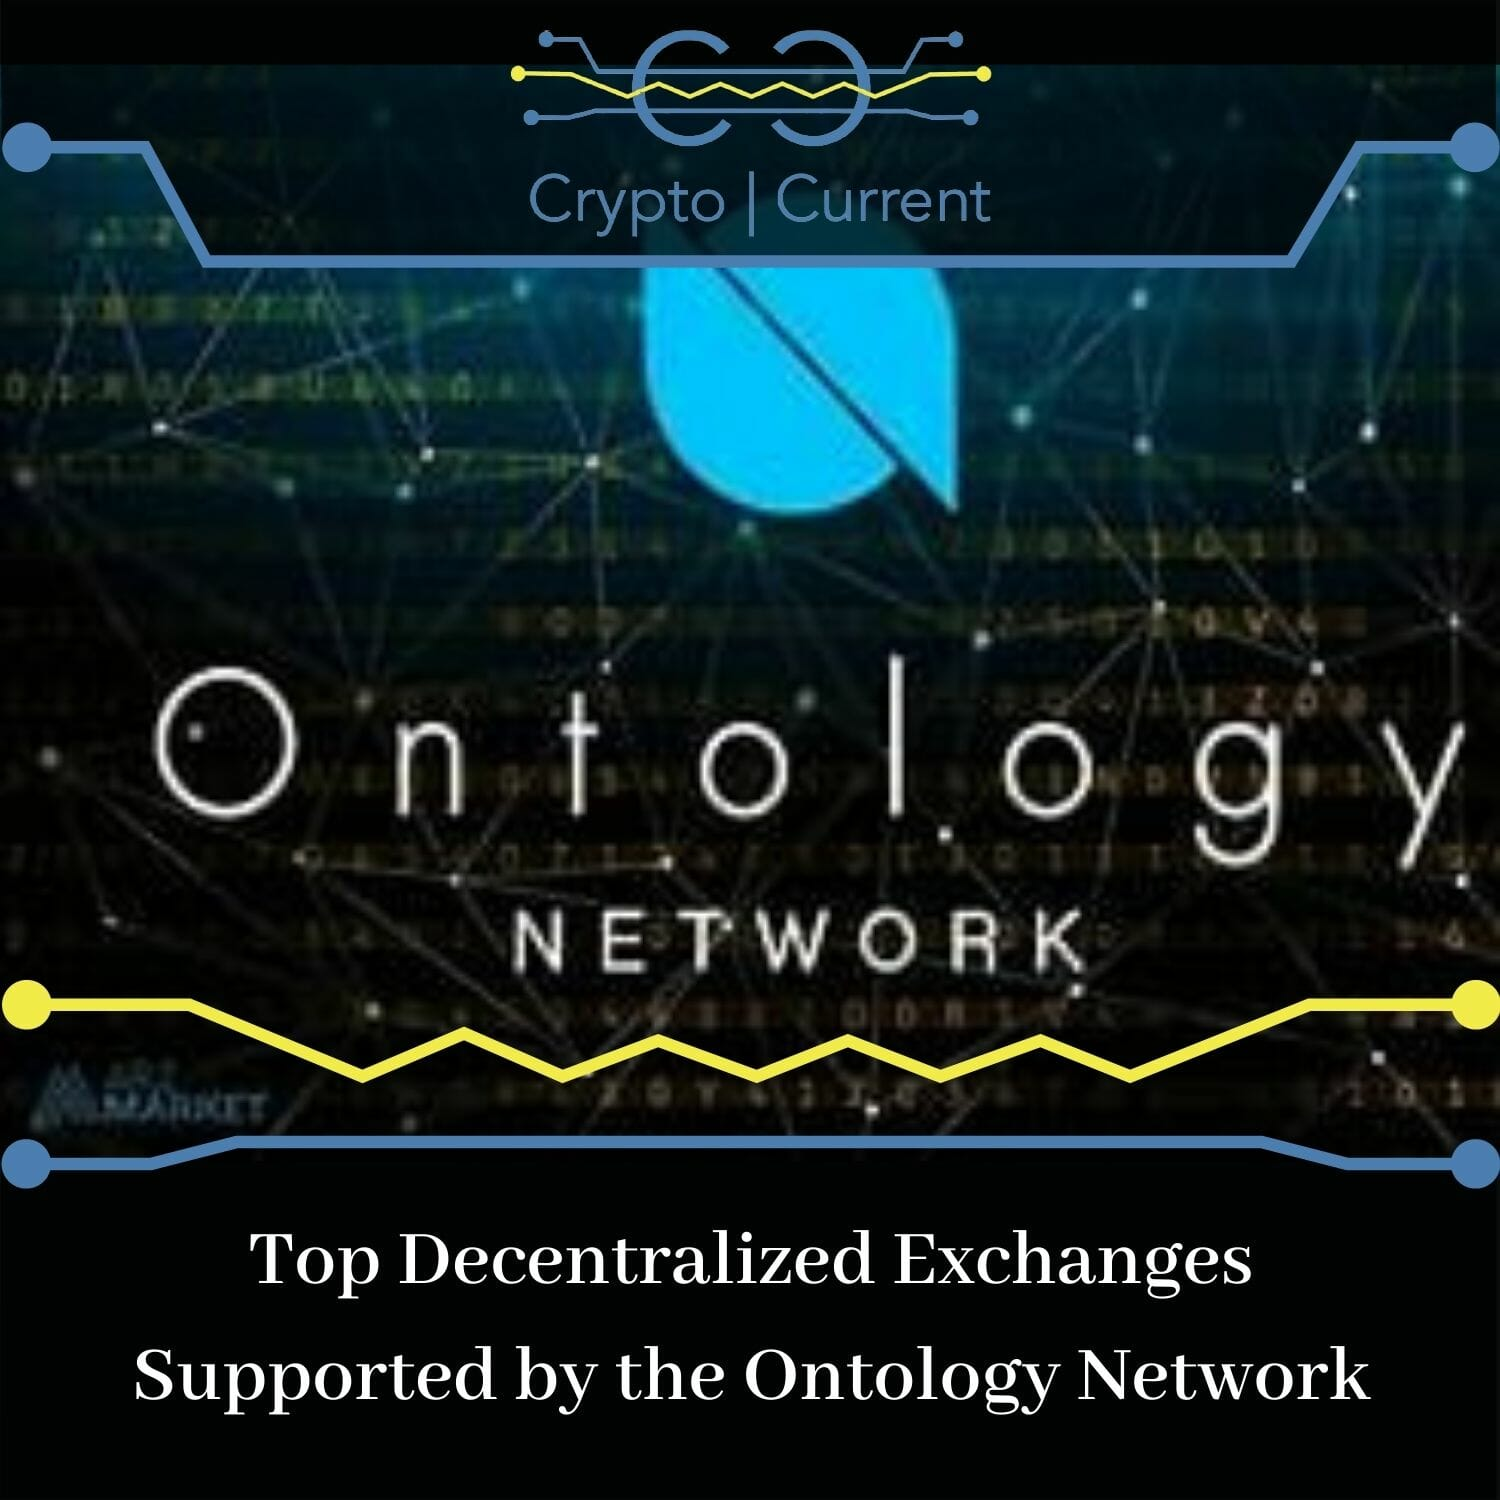 Top Decentralized Exchanges Supported by the Ontology Network